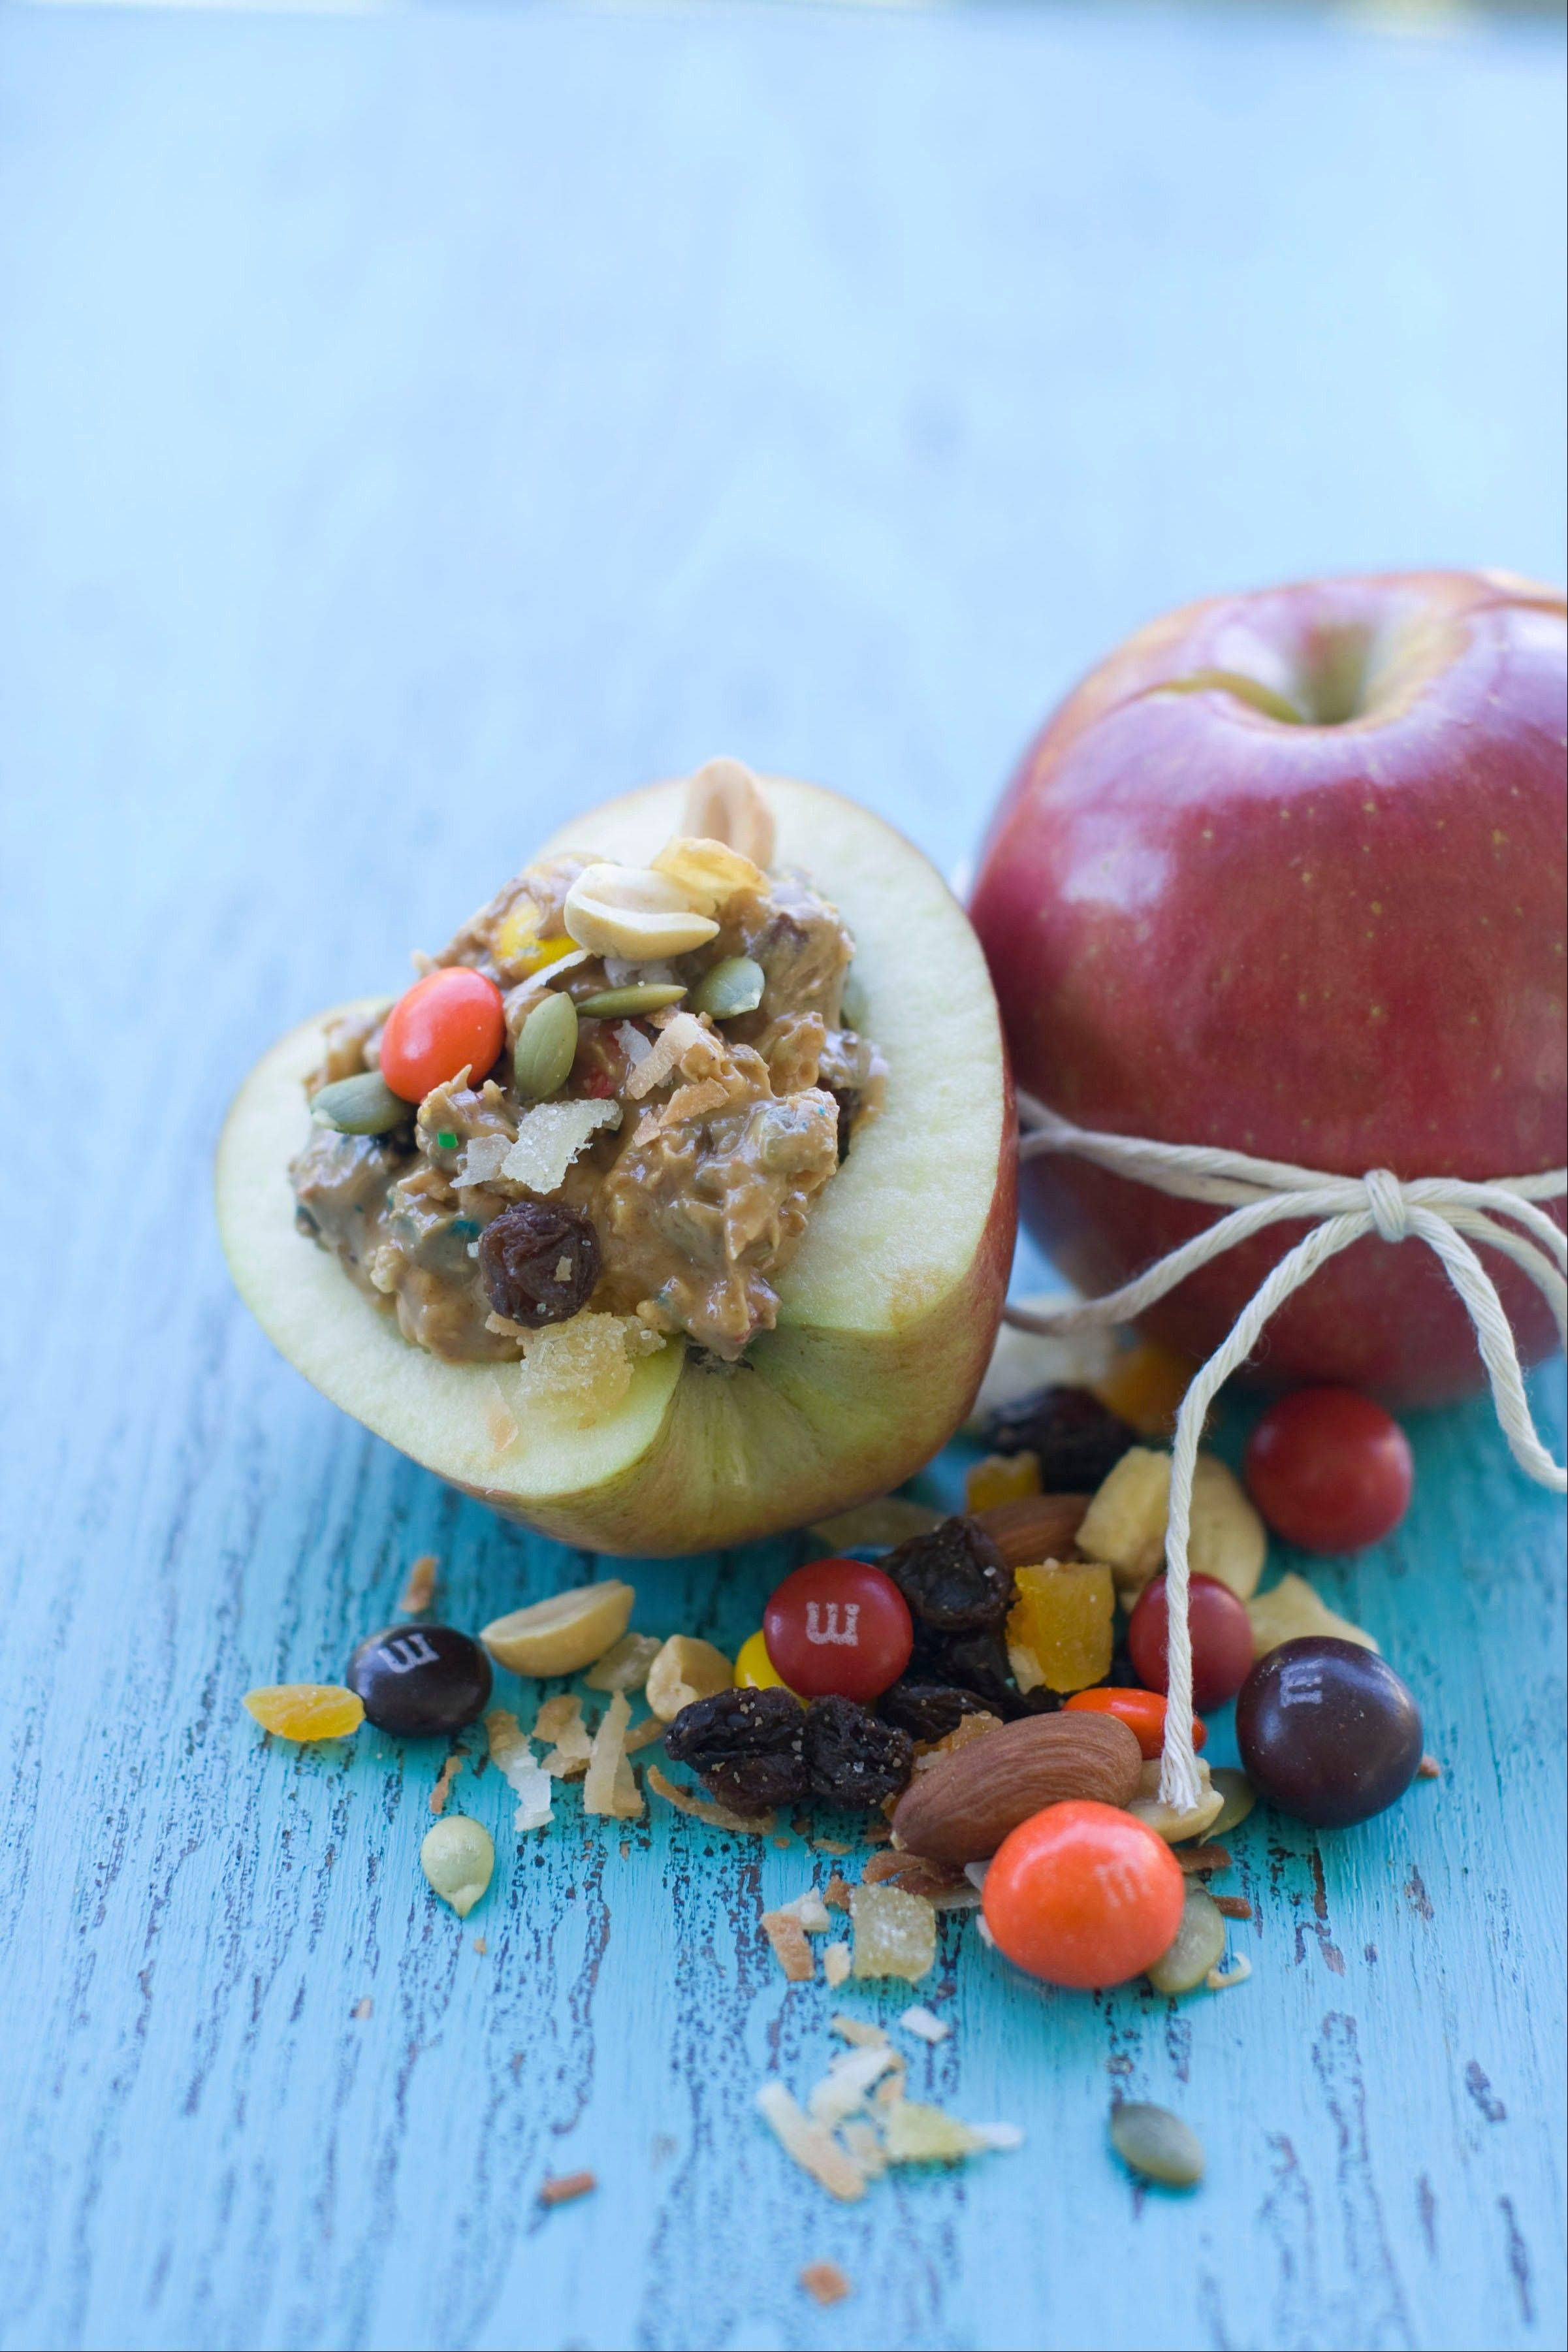 Gorp-stuffed apples make a nice treat for children and adults.